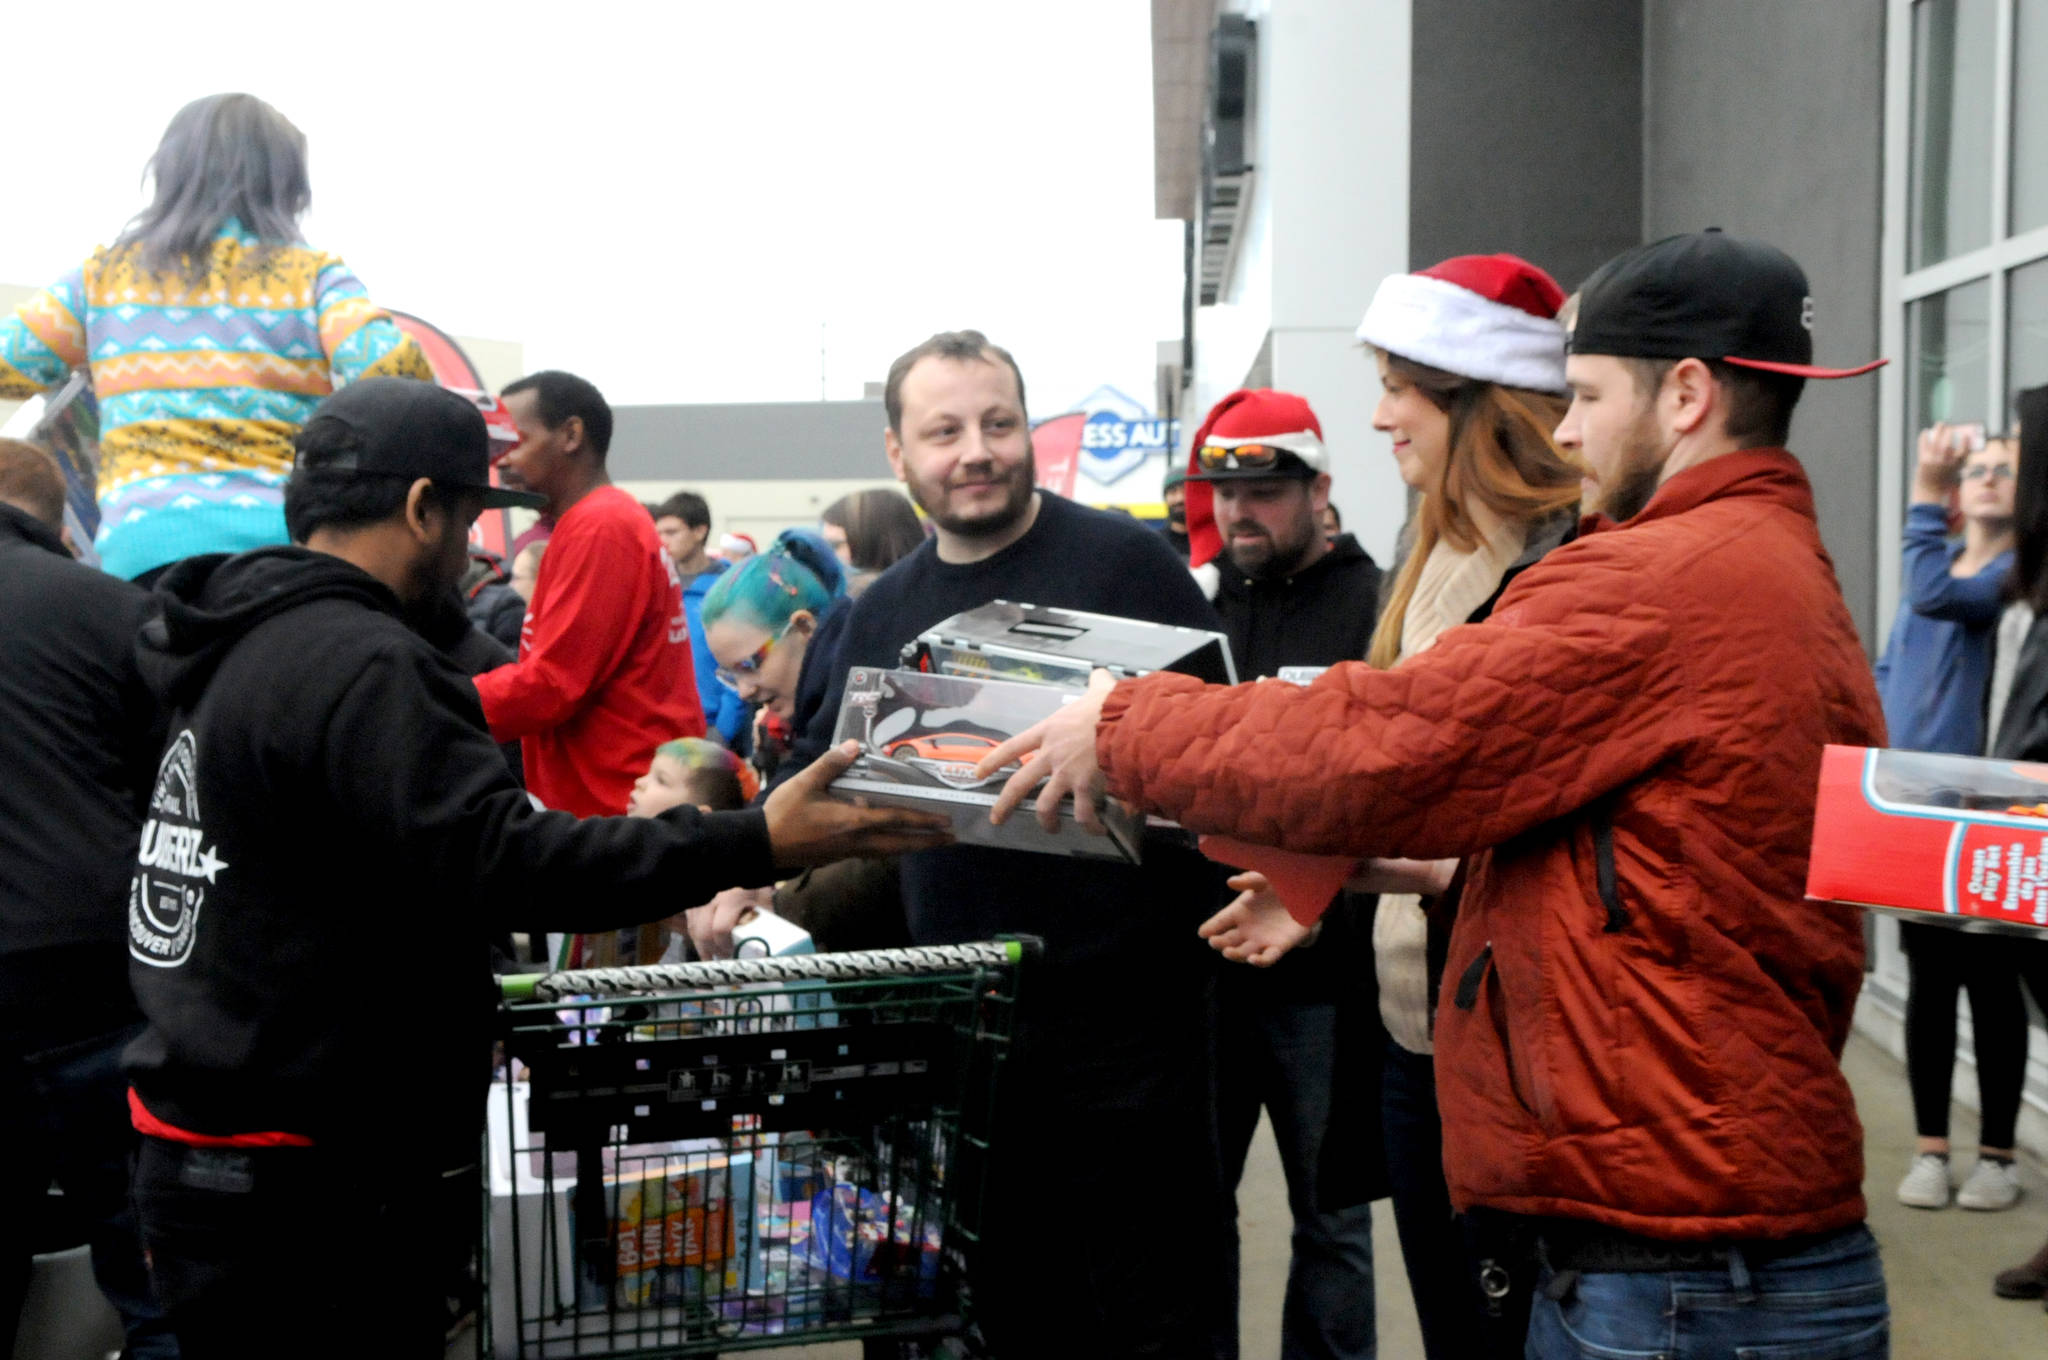 VIDEO: European car enthusiasts donate $2000 and truckloads of toys to Langley Christmas Bureau